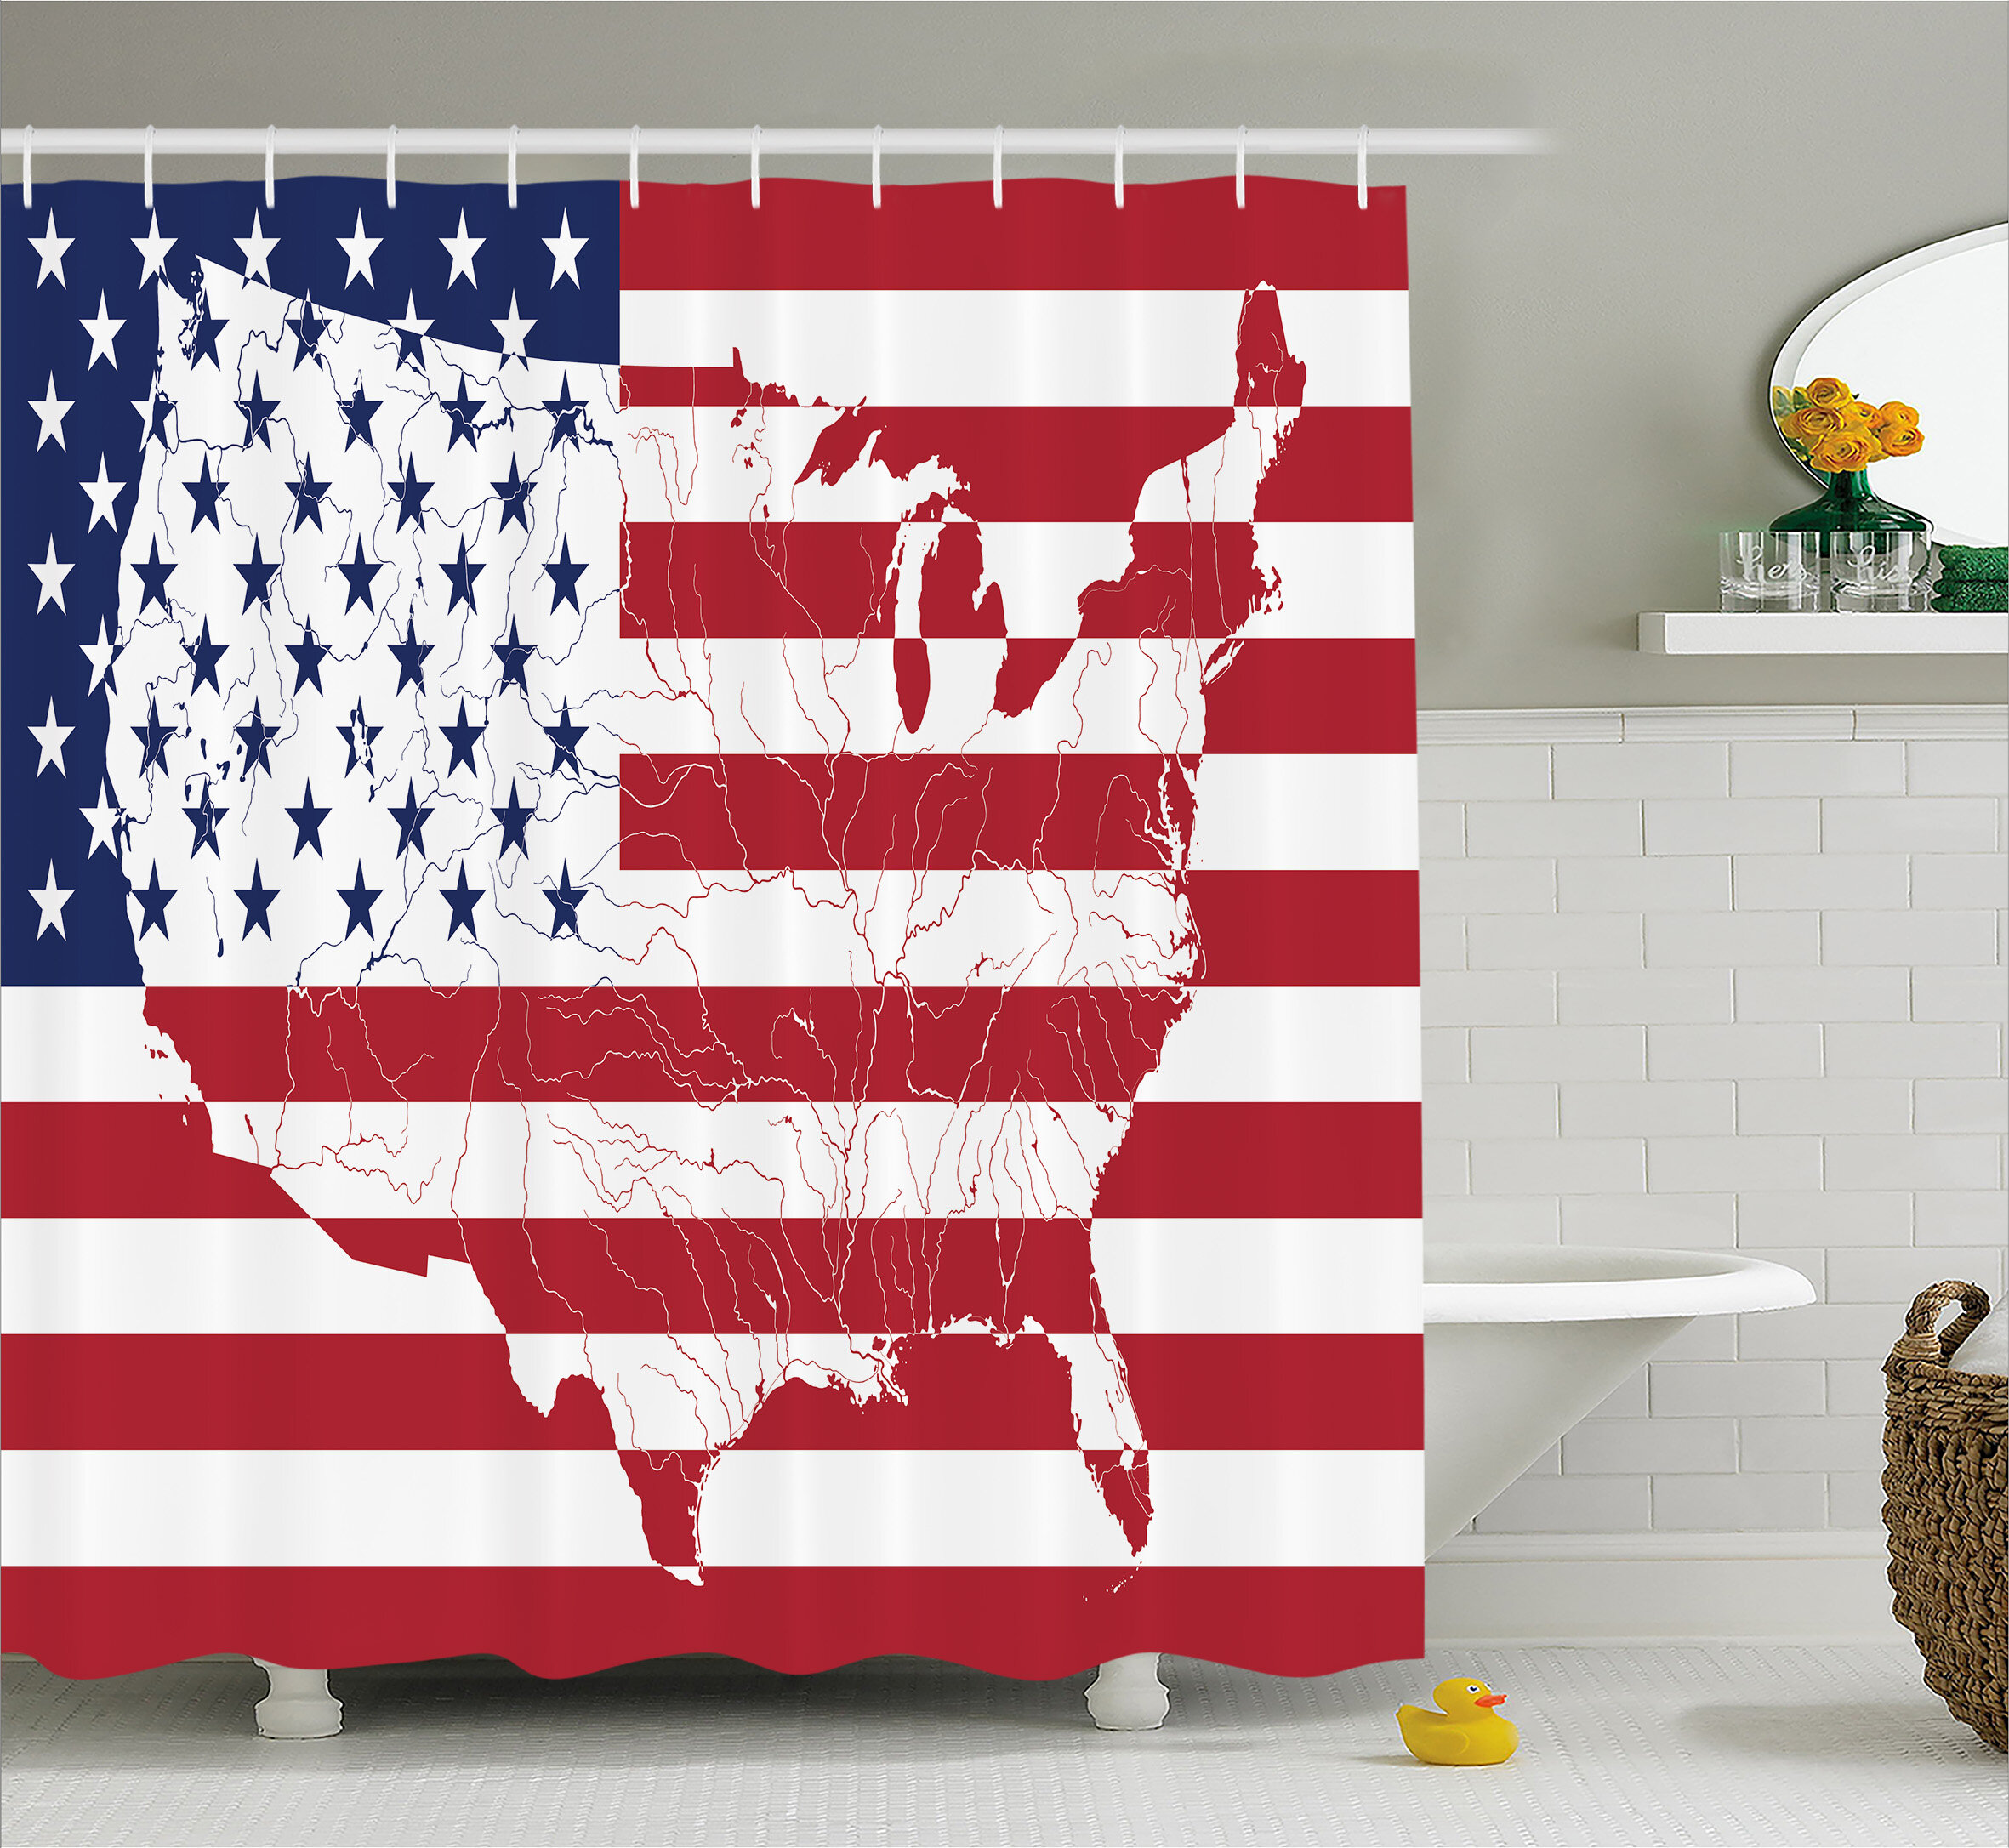 East urban home stars and stripes decor shower curtain Stars and stripes home decor